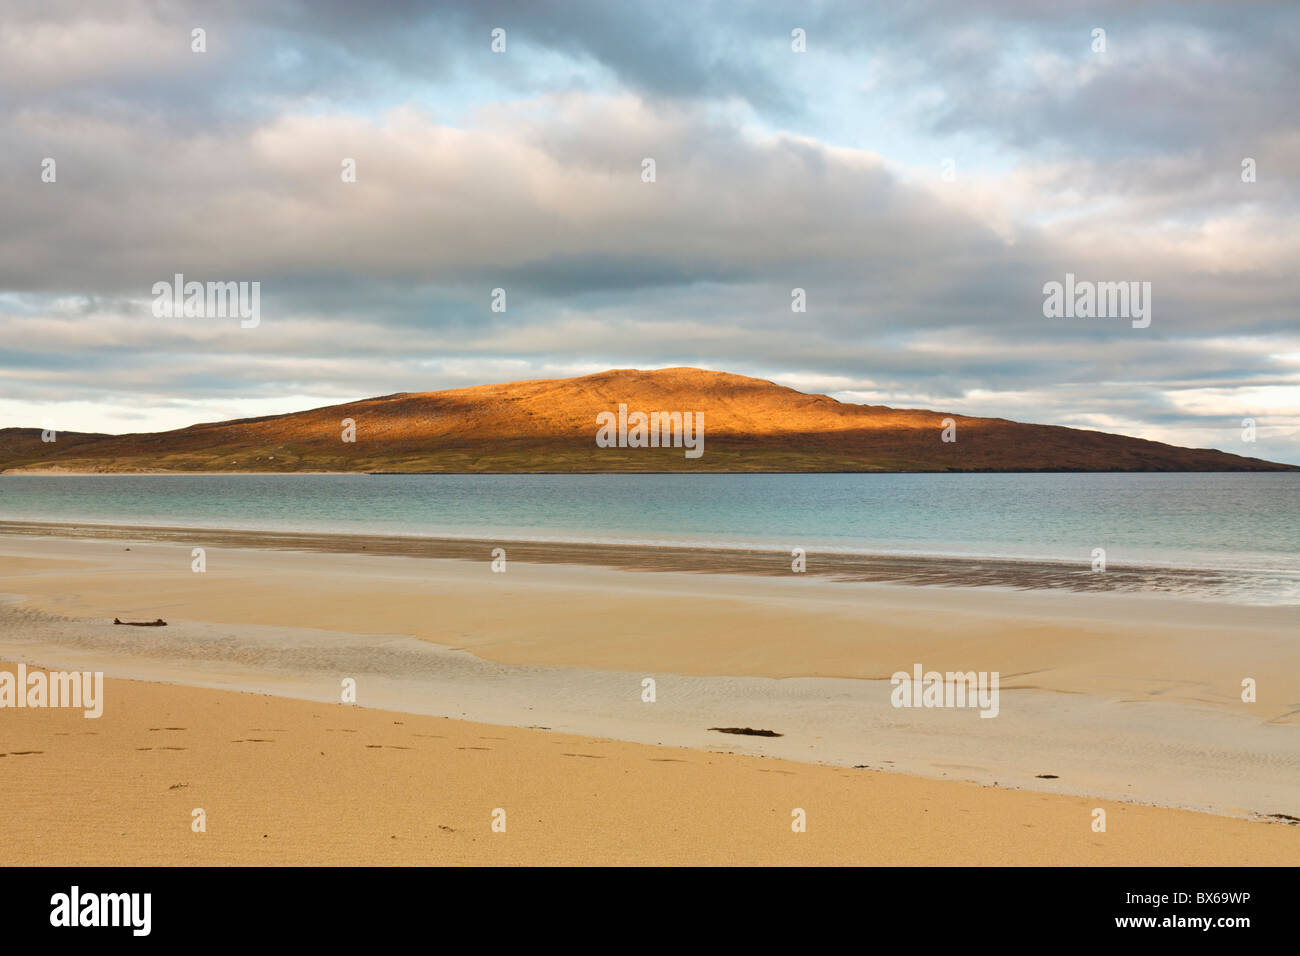 The isle of Taransay lit up through a break in the clouds - Stock Image